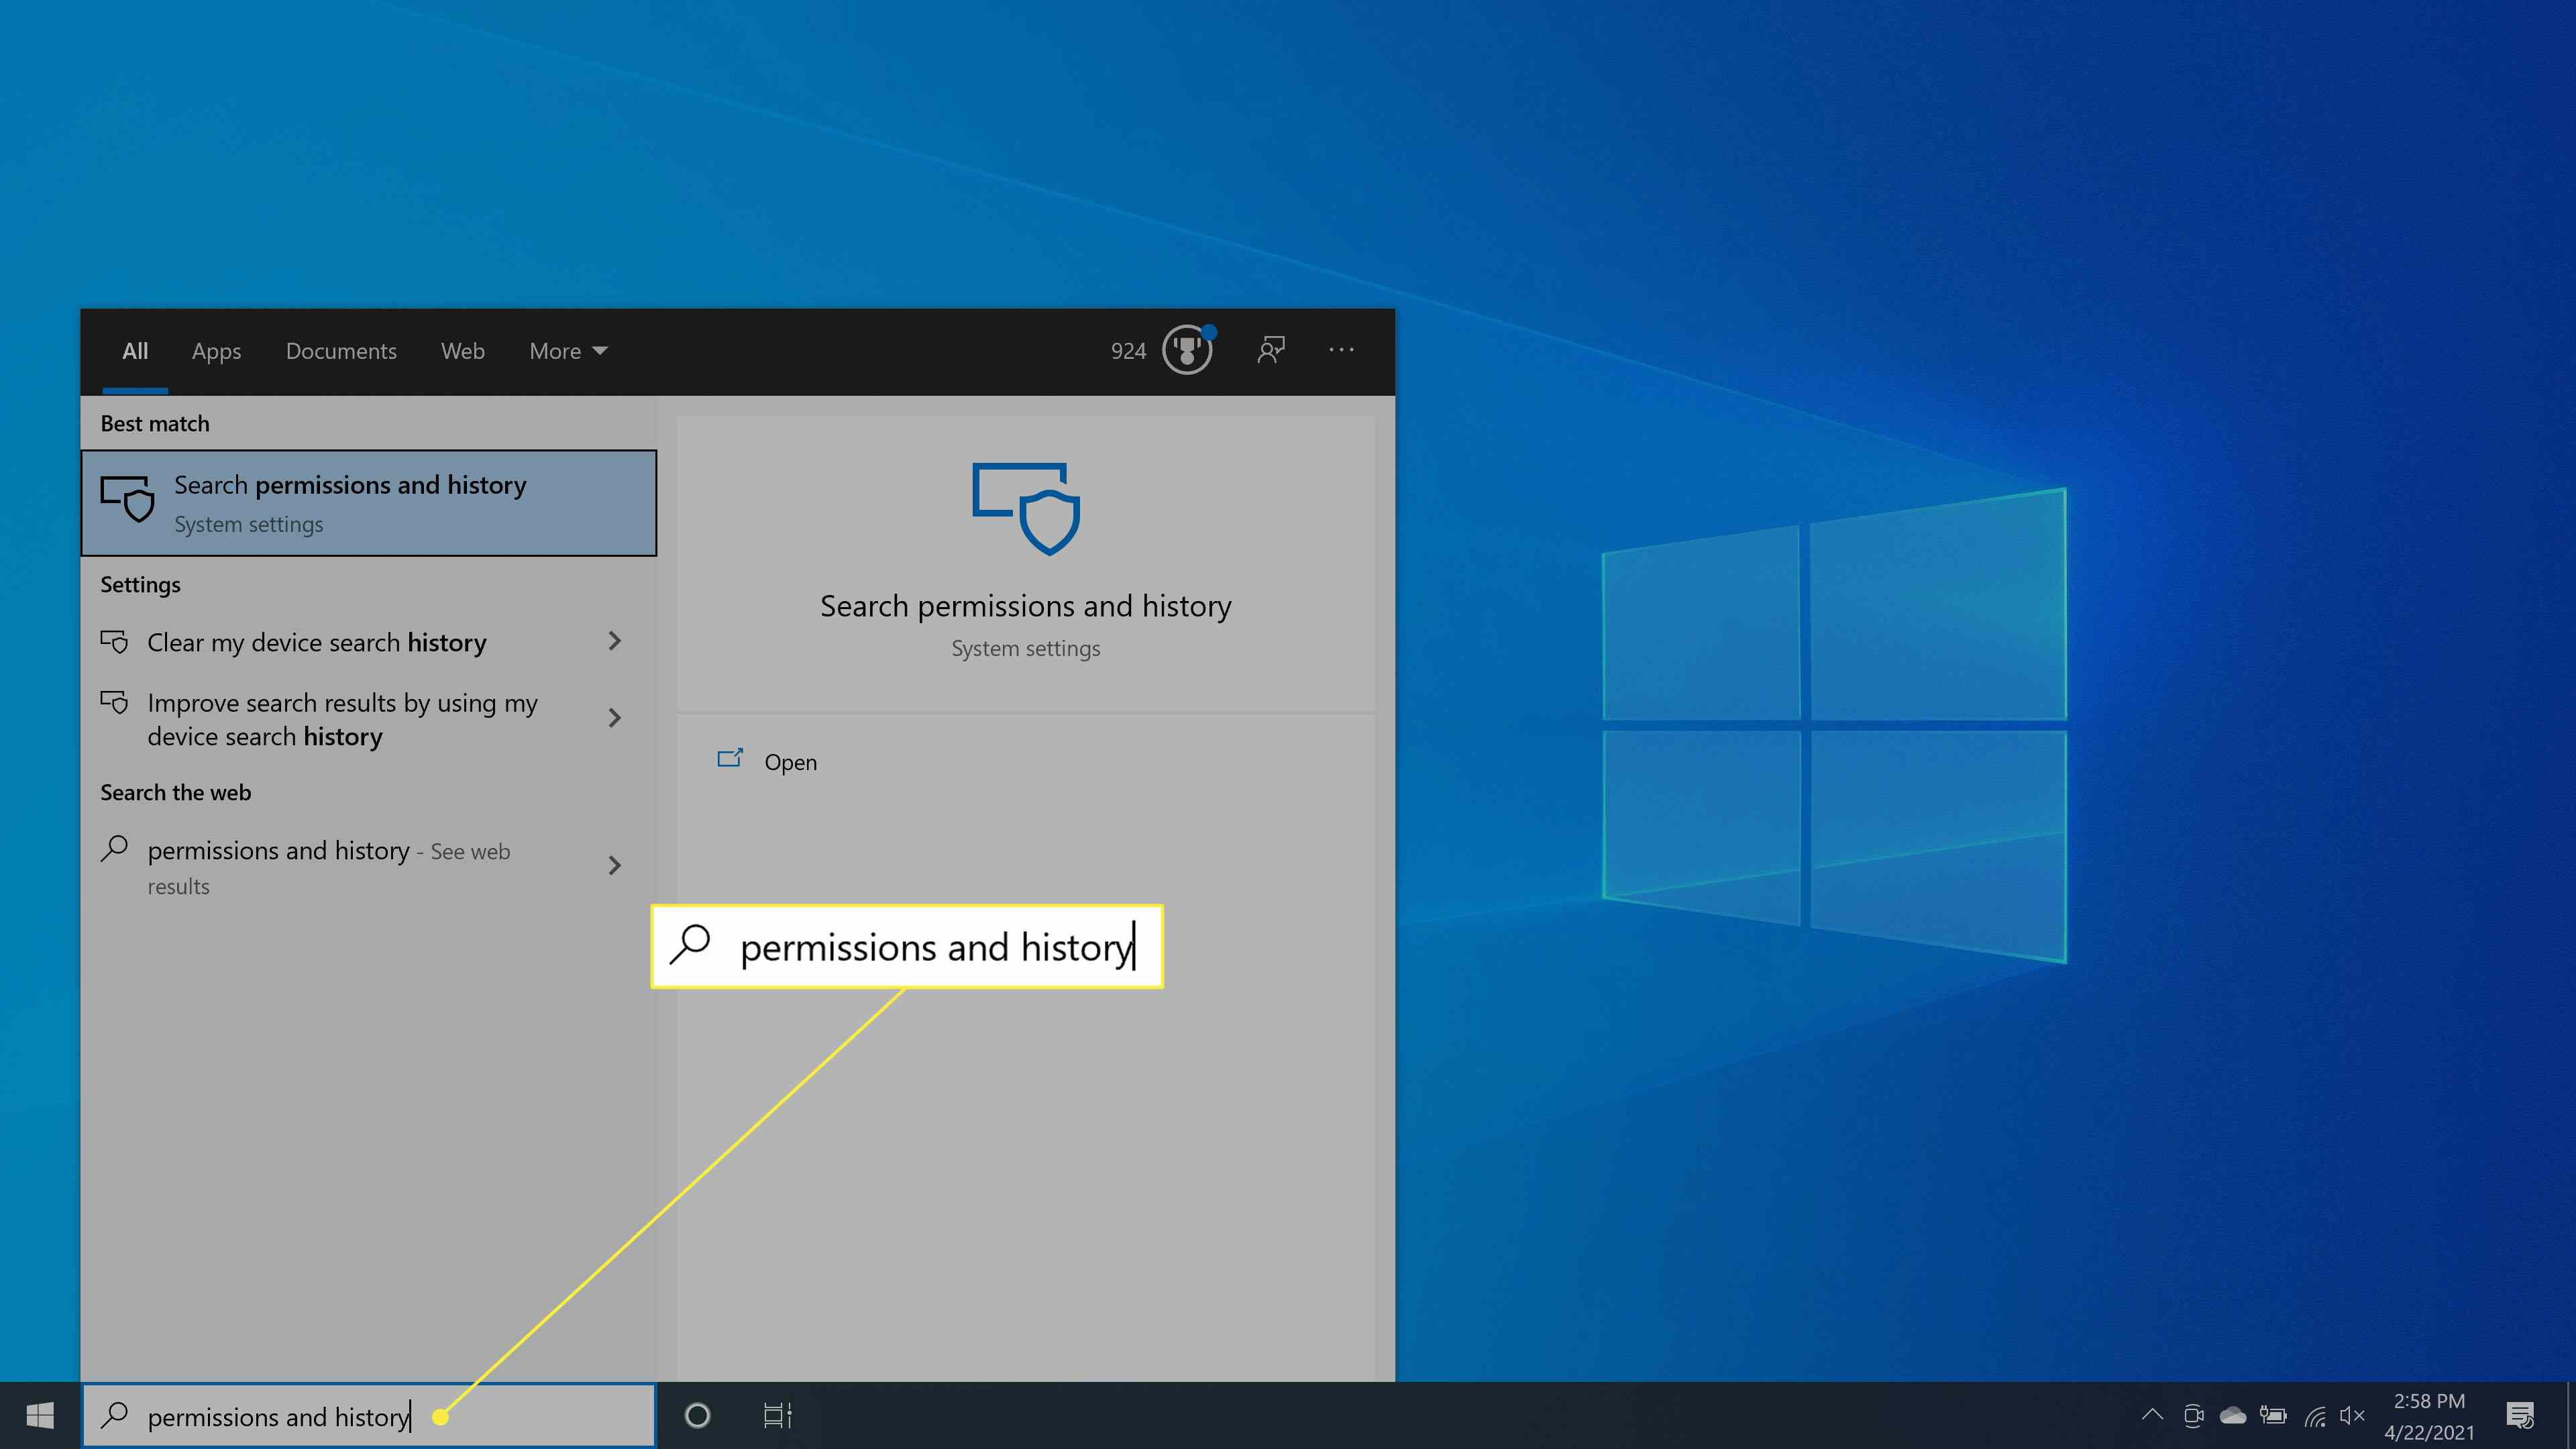 Type permissions and history in the Windows search box and select Permissions & history.